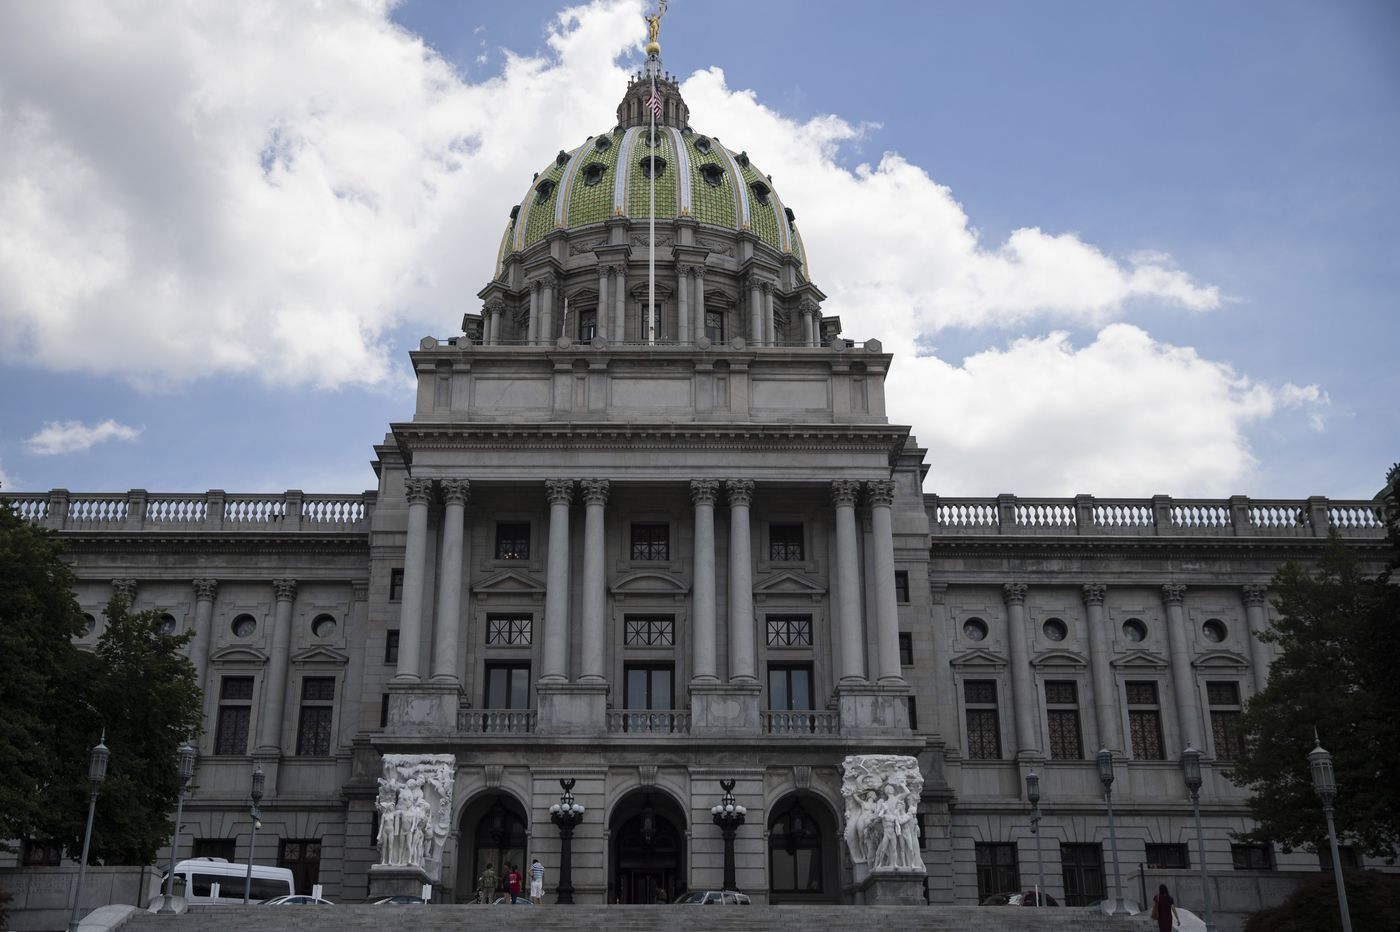 Pa.'s 5G wireless bill stirs up fears that it will cater to telecom and gut towns' zoning